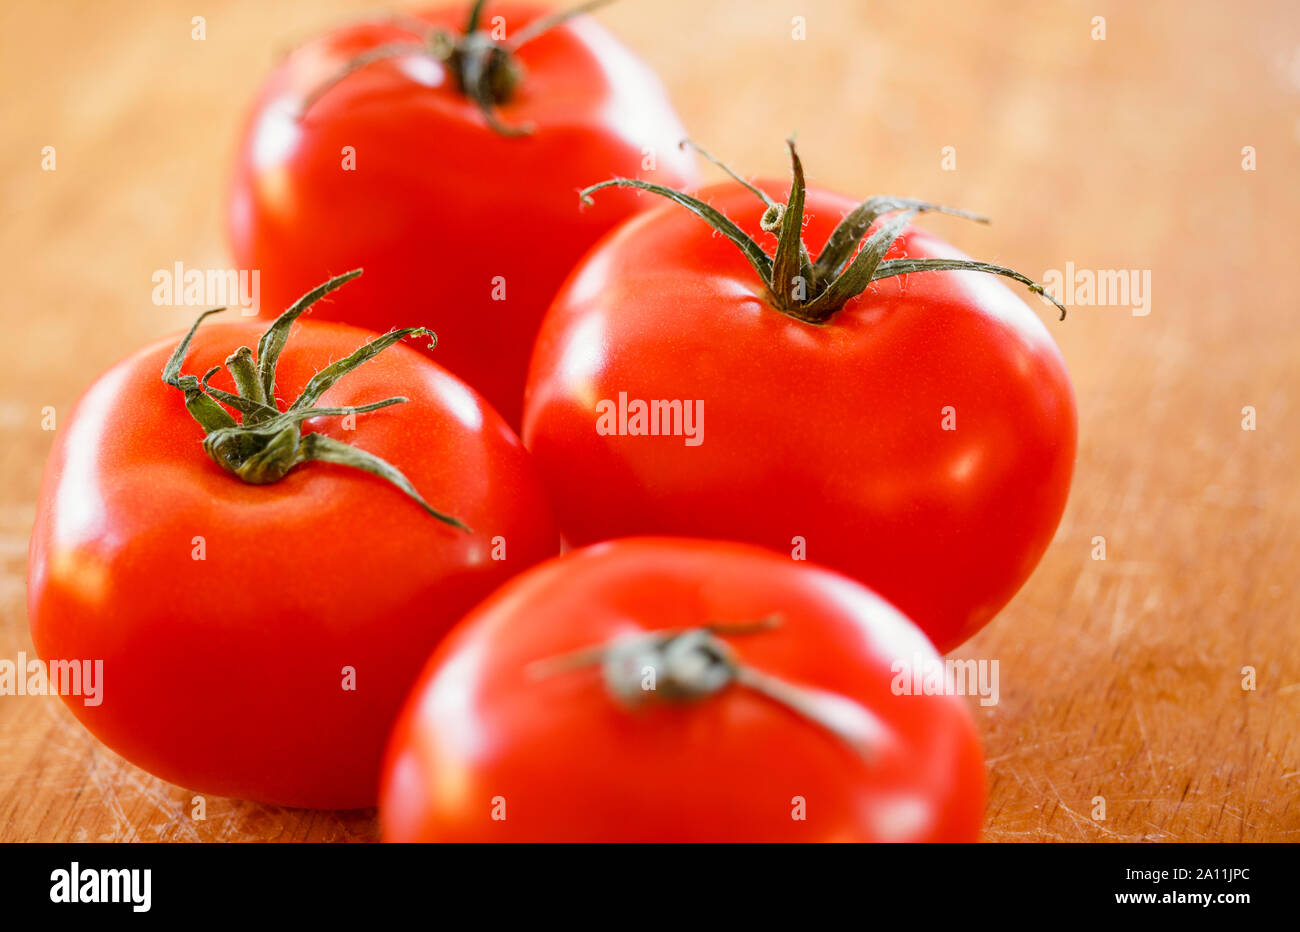 Tomatoes on a wooden surface, close up Stock Photo